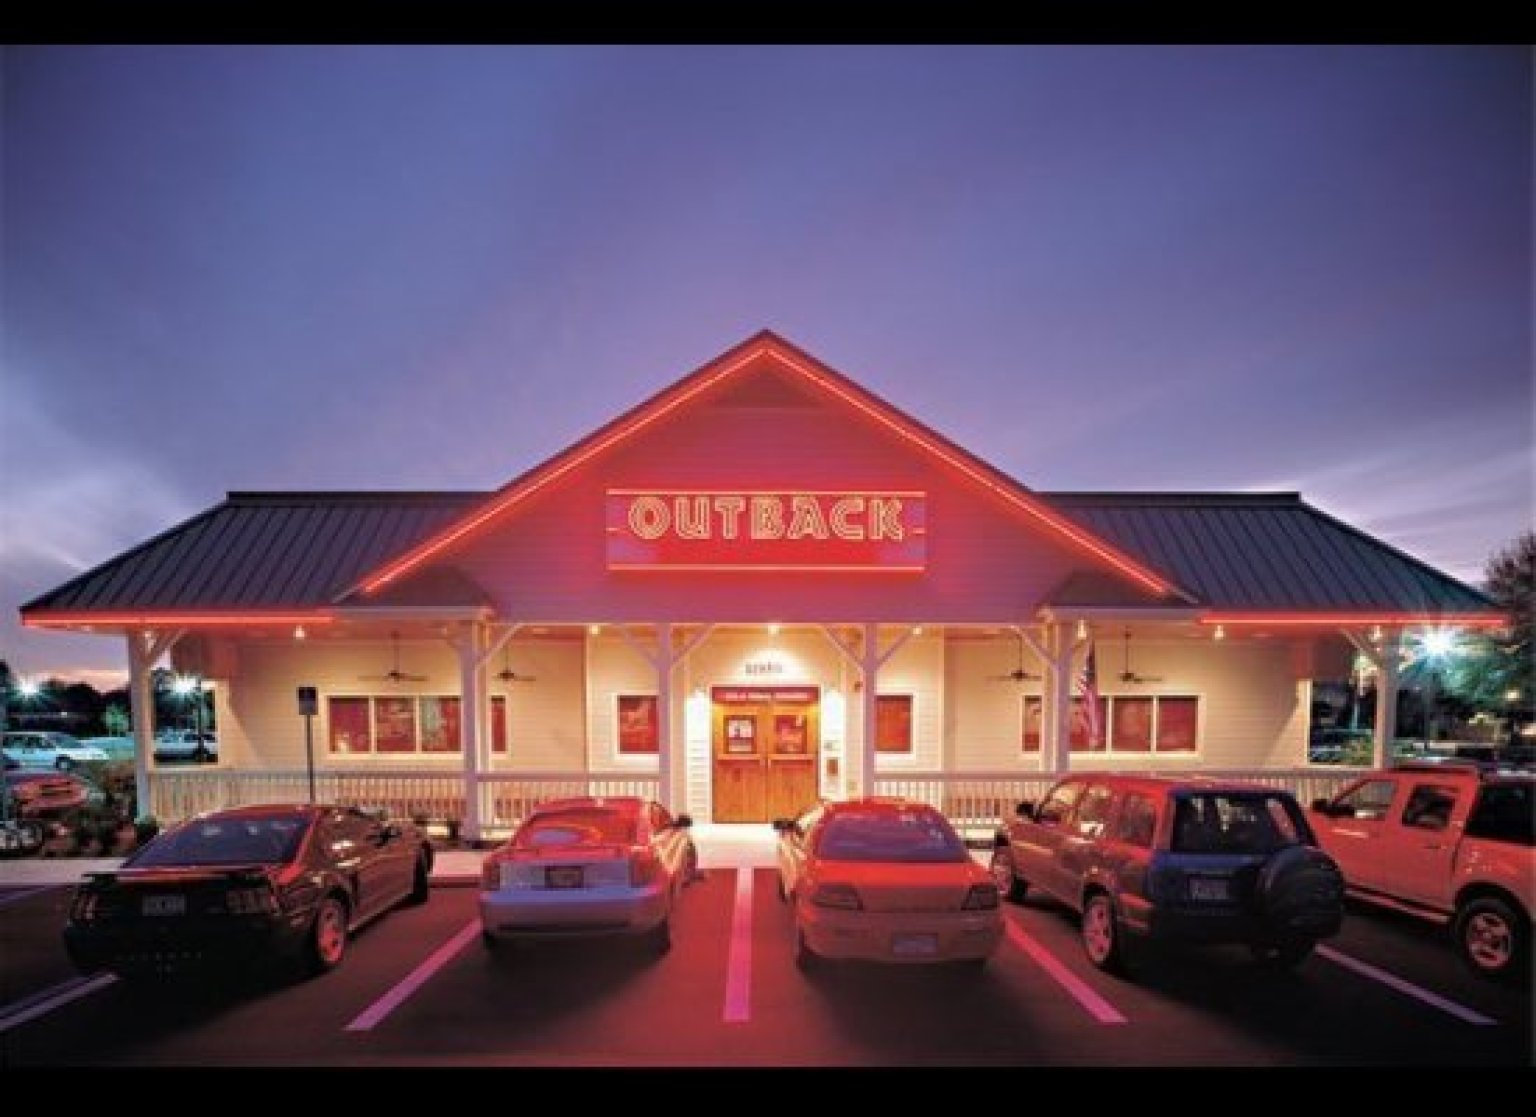 Outback Steakhouse is an Australian-themed American casual dining restaurant chain, serving American cuisine, based in Tampa, Florida. The chains has over 1, locations in 23 countries throughout North and South America, Asia, and Australia.